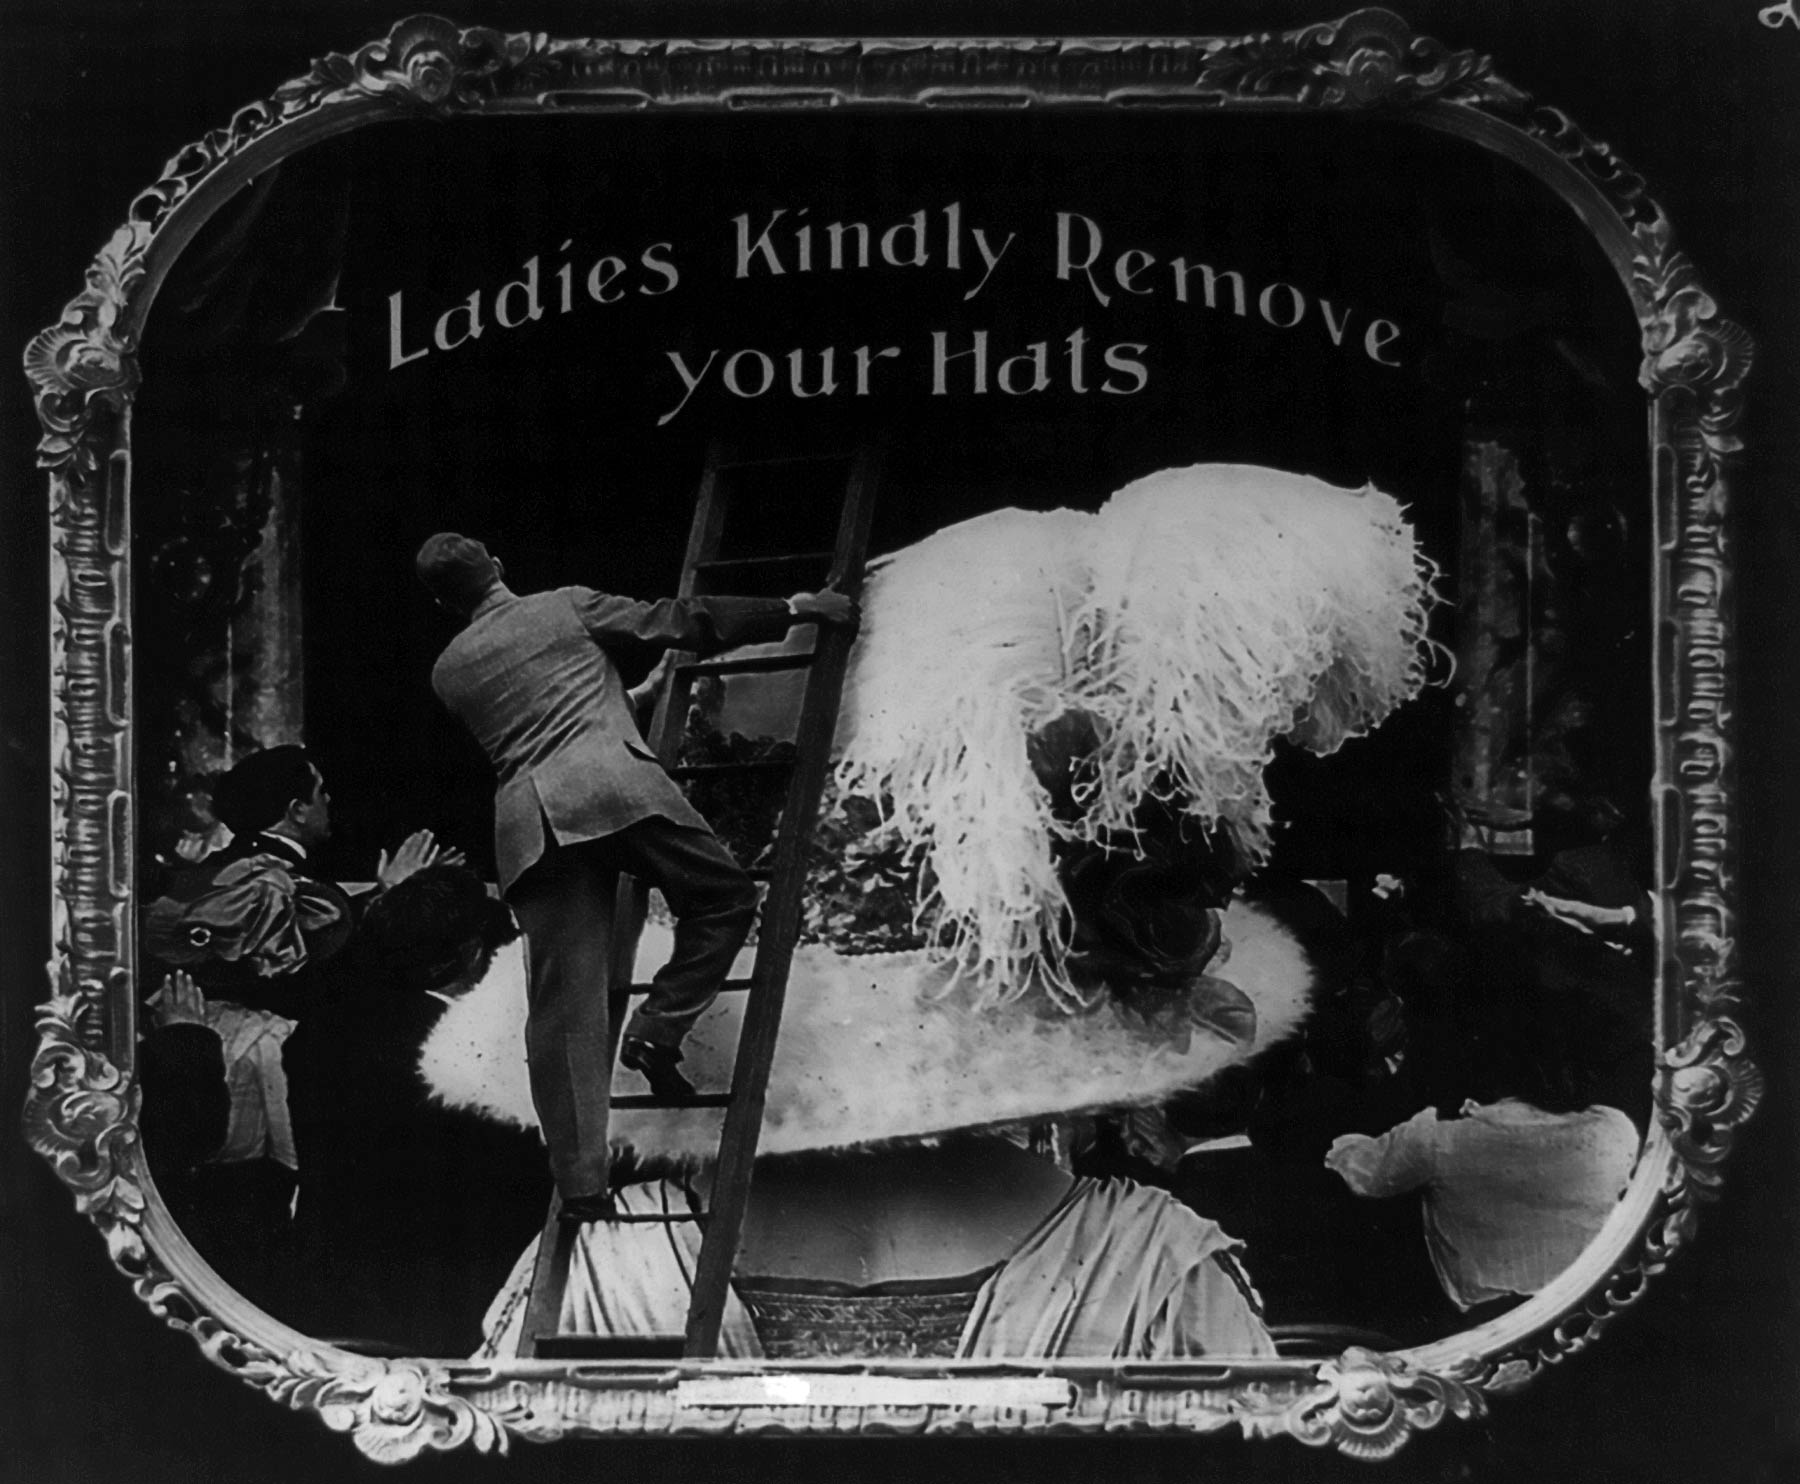 Black and white collage. A man stands on a ladder, which is on a feminine hat on a giant woman's head. He is trying to watch a cinema screen. Text reads: Ladies kindly remove your hats